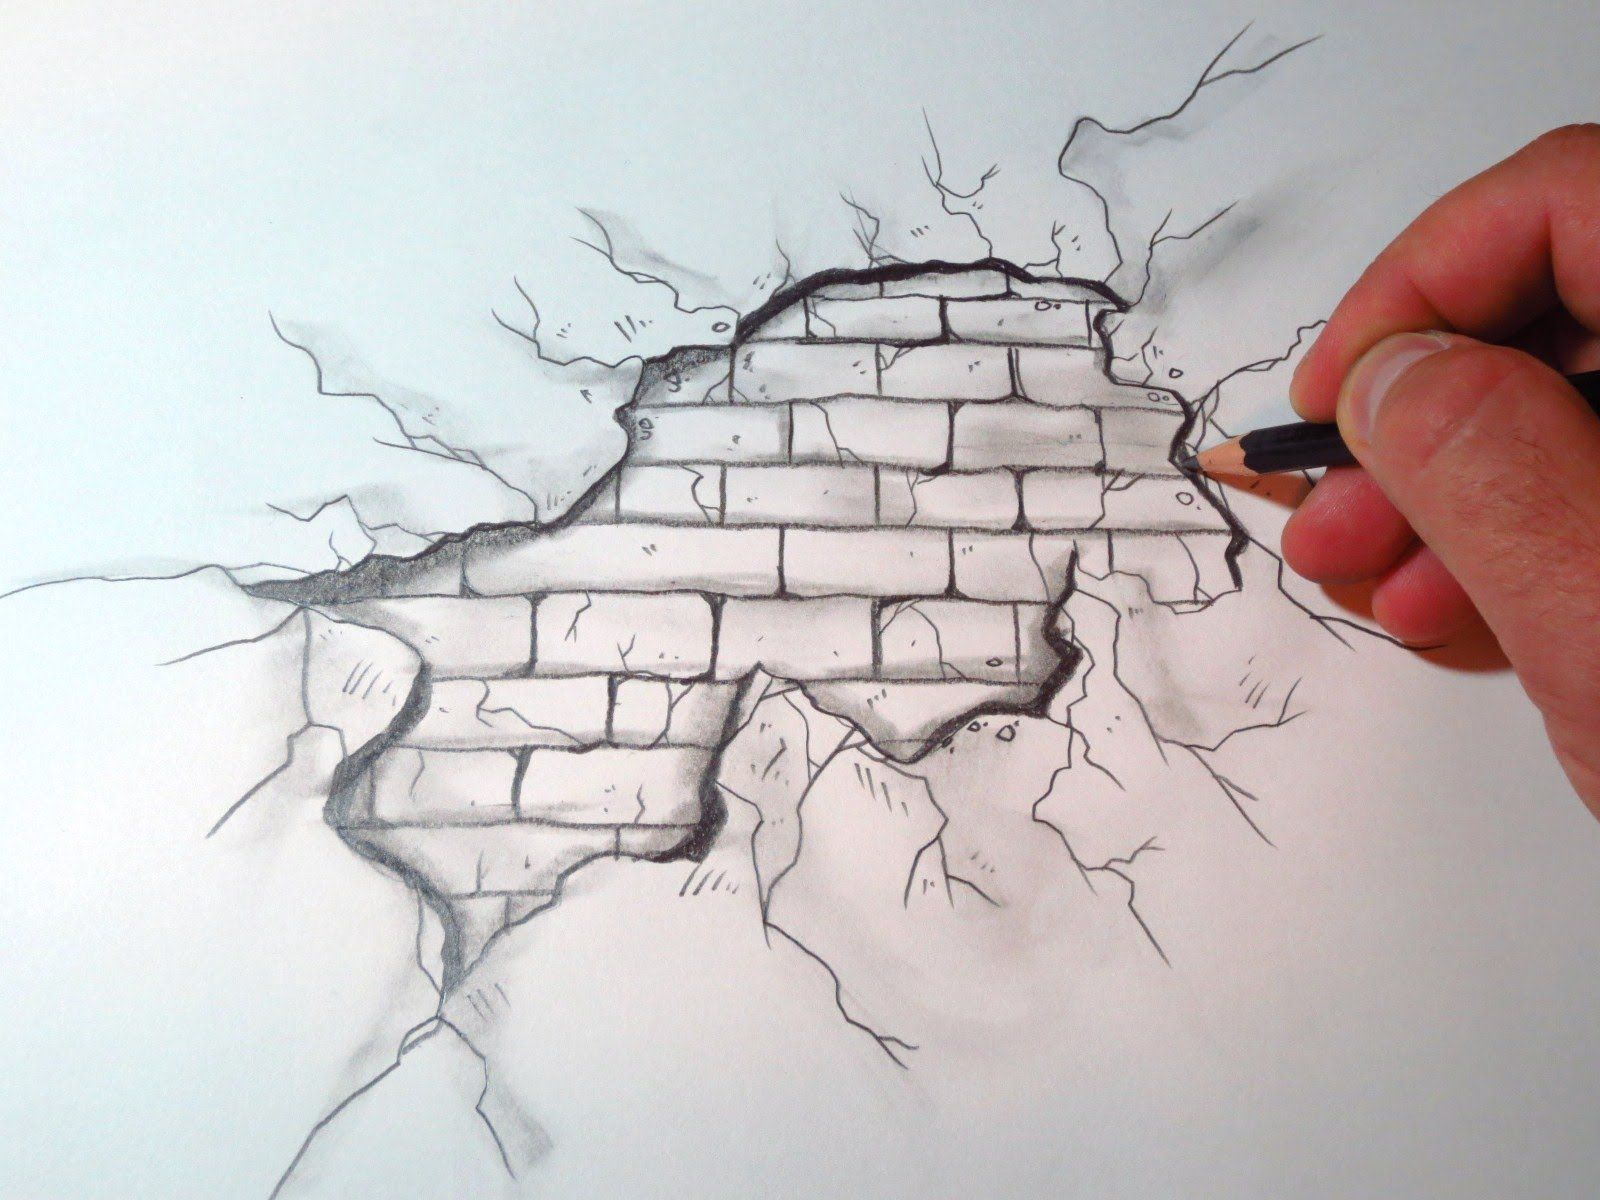 How To Draw A Cracked Brick Wall (The Original) - YouTube ...